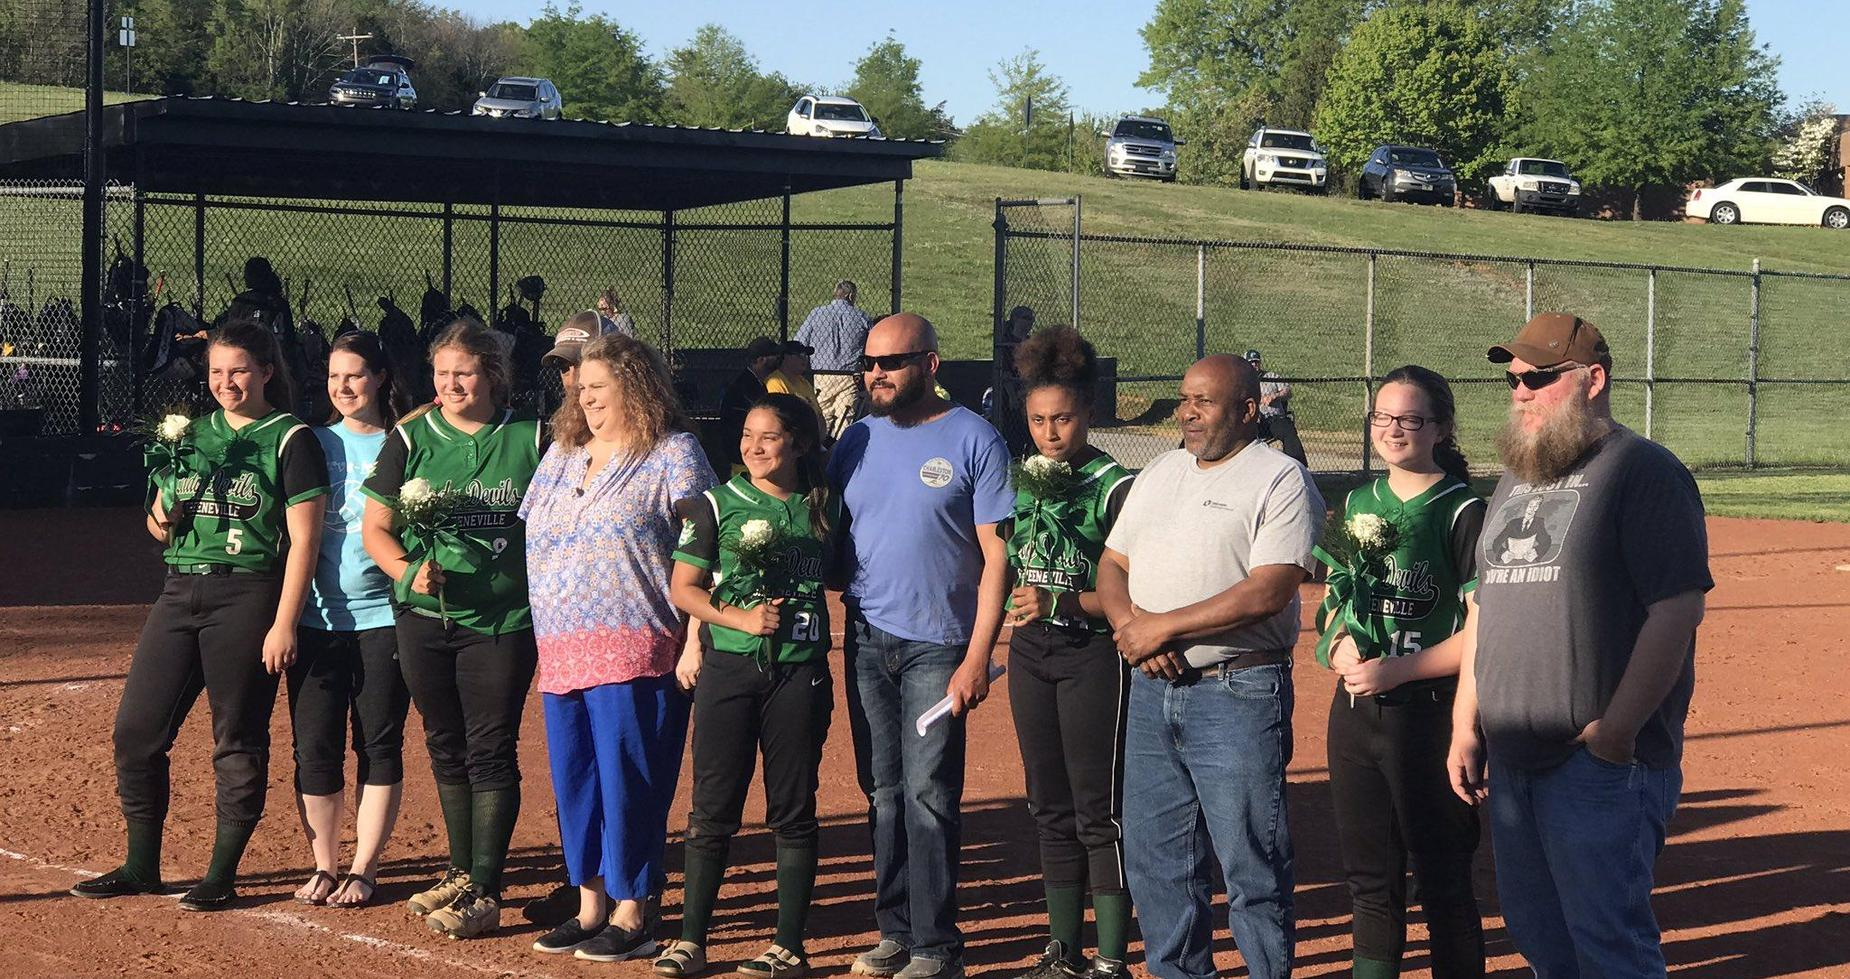 A picture of 8th grade softball players with parents